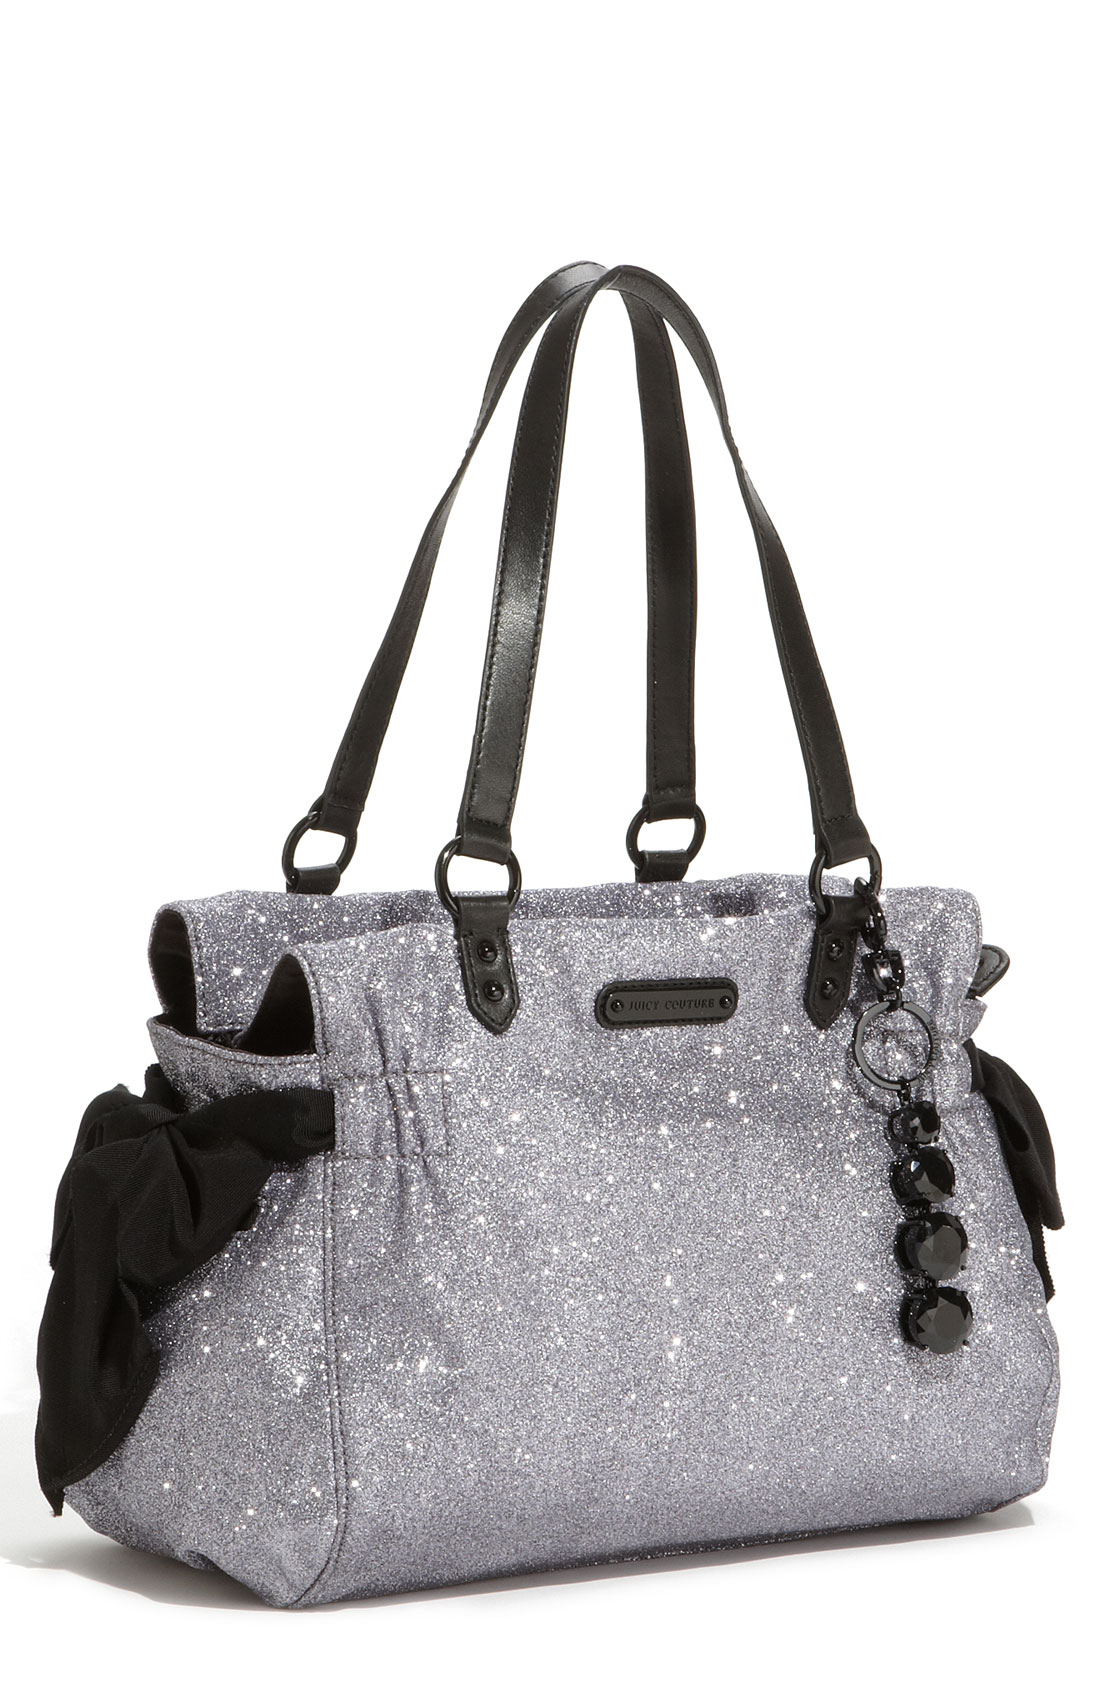 lyst juicy couture stardust glitter daydreamer tote in black. Black Bedroom Furniture Sets. Home Design Ideas